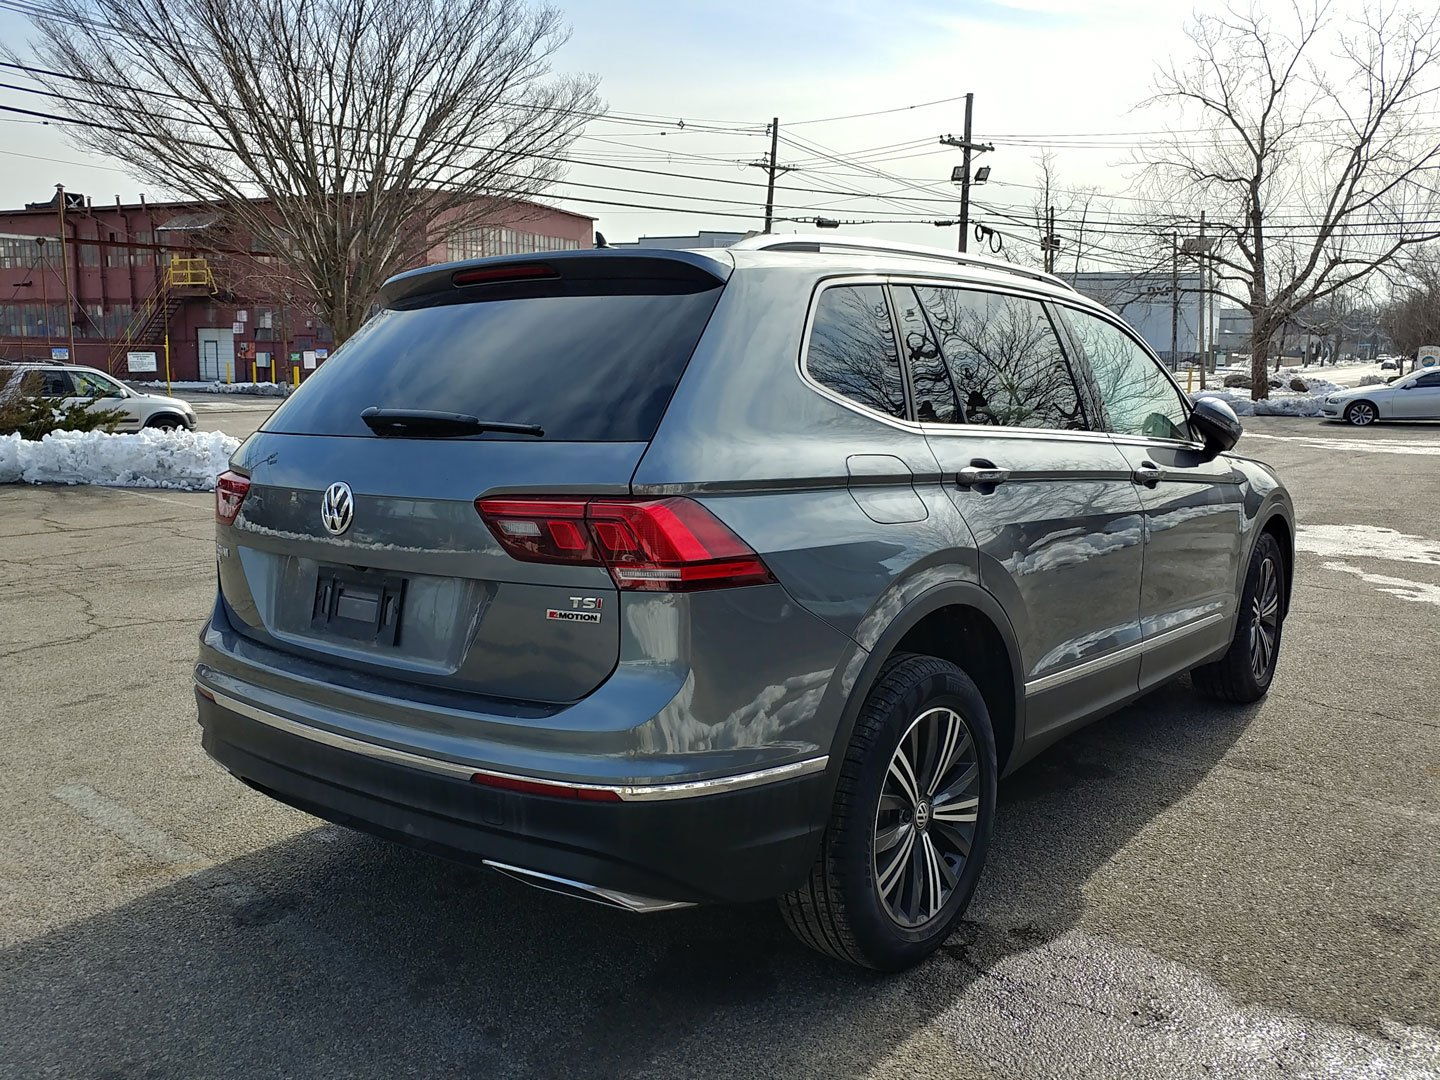 VW-Tiguan-salvage